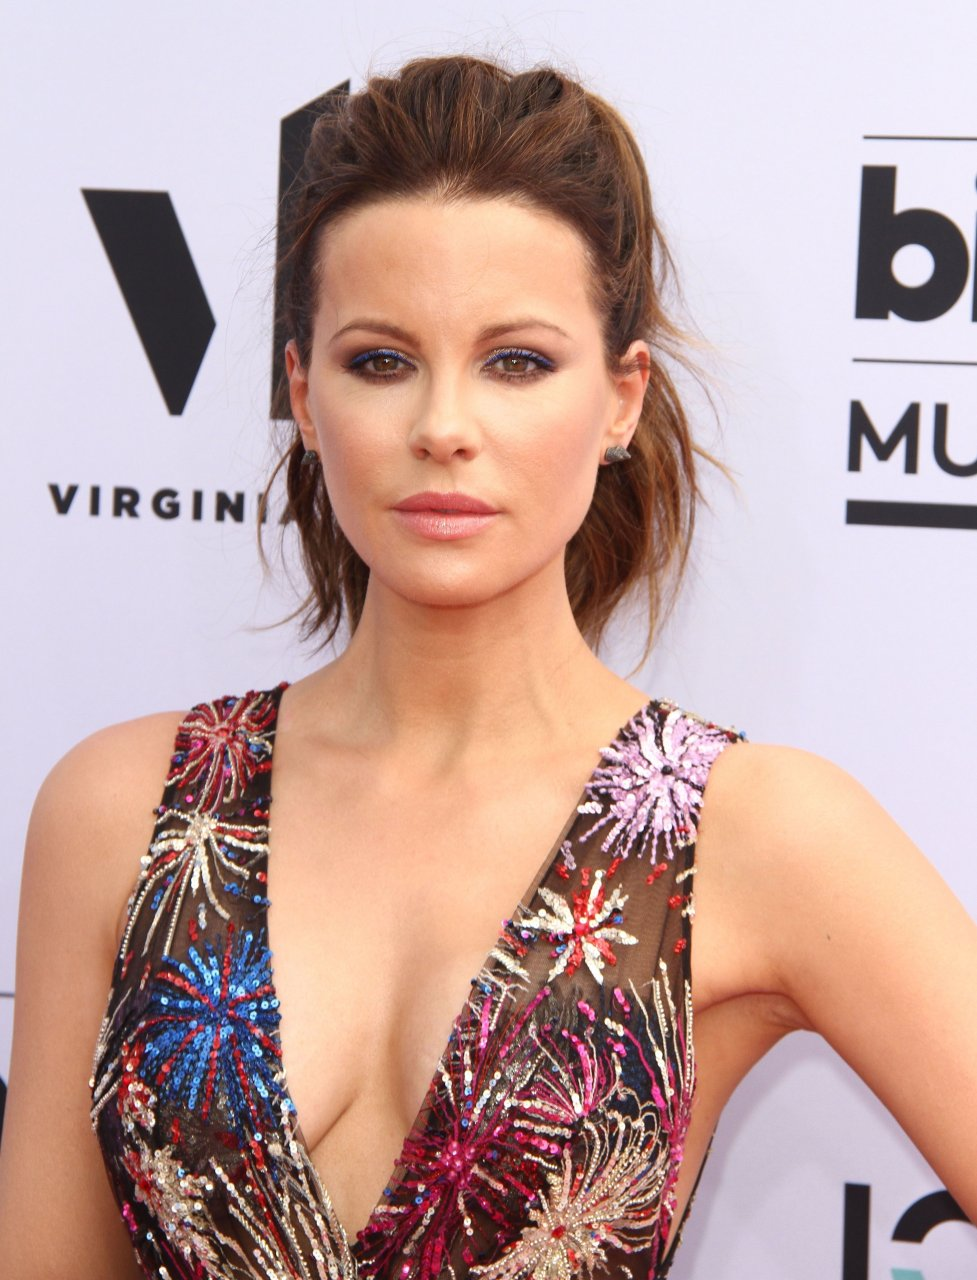 Put her naked photos of kate beckinsale the